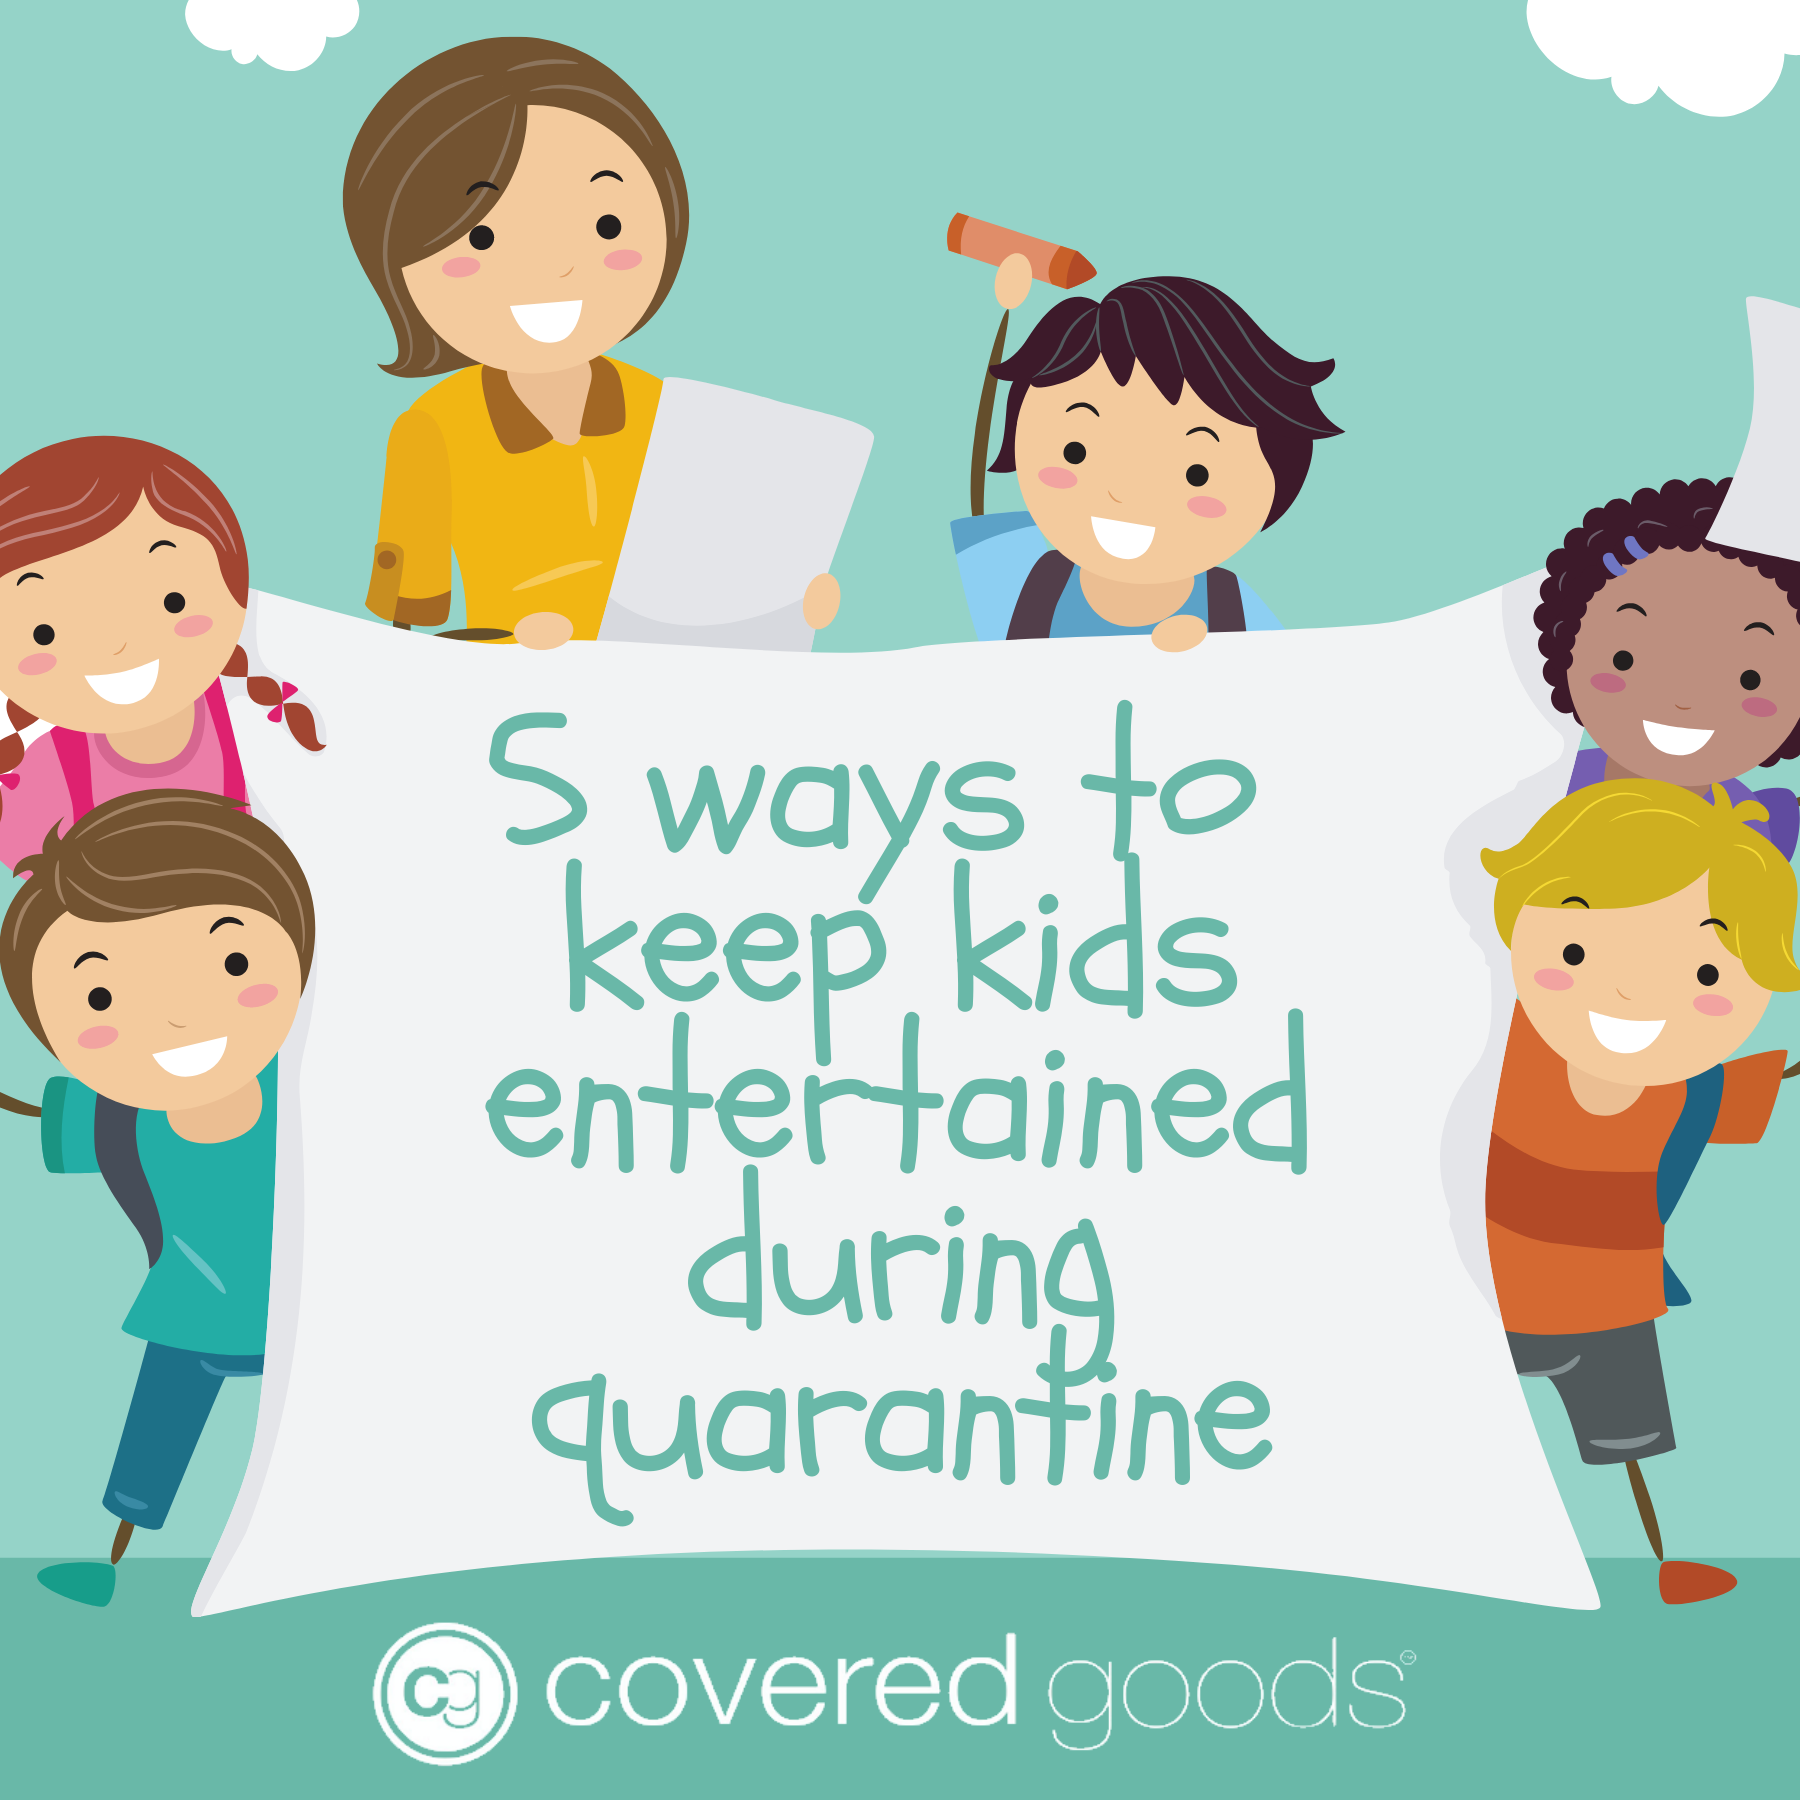 5 Ways to Keep Kids Entertained During Quarantine